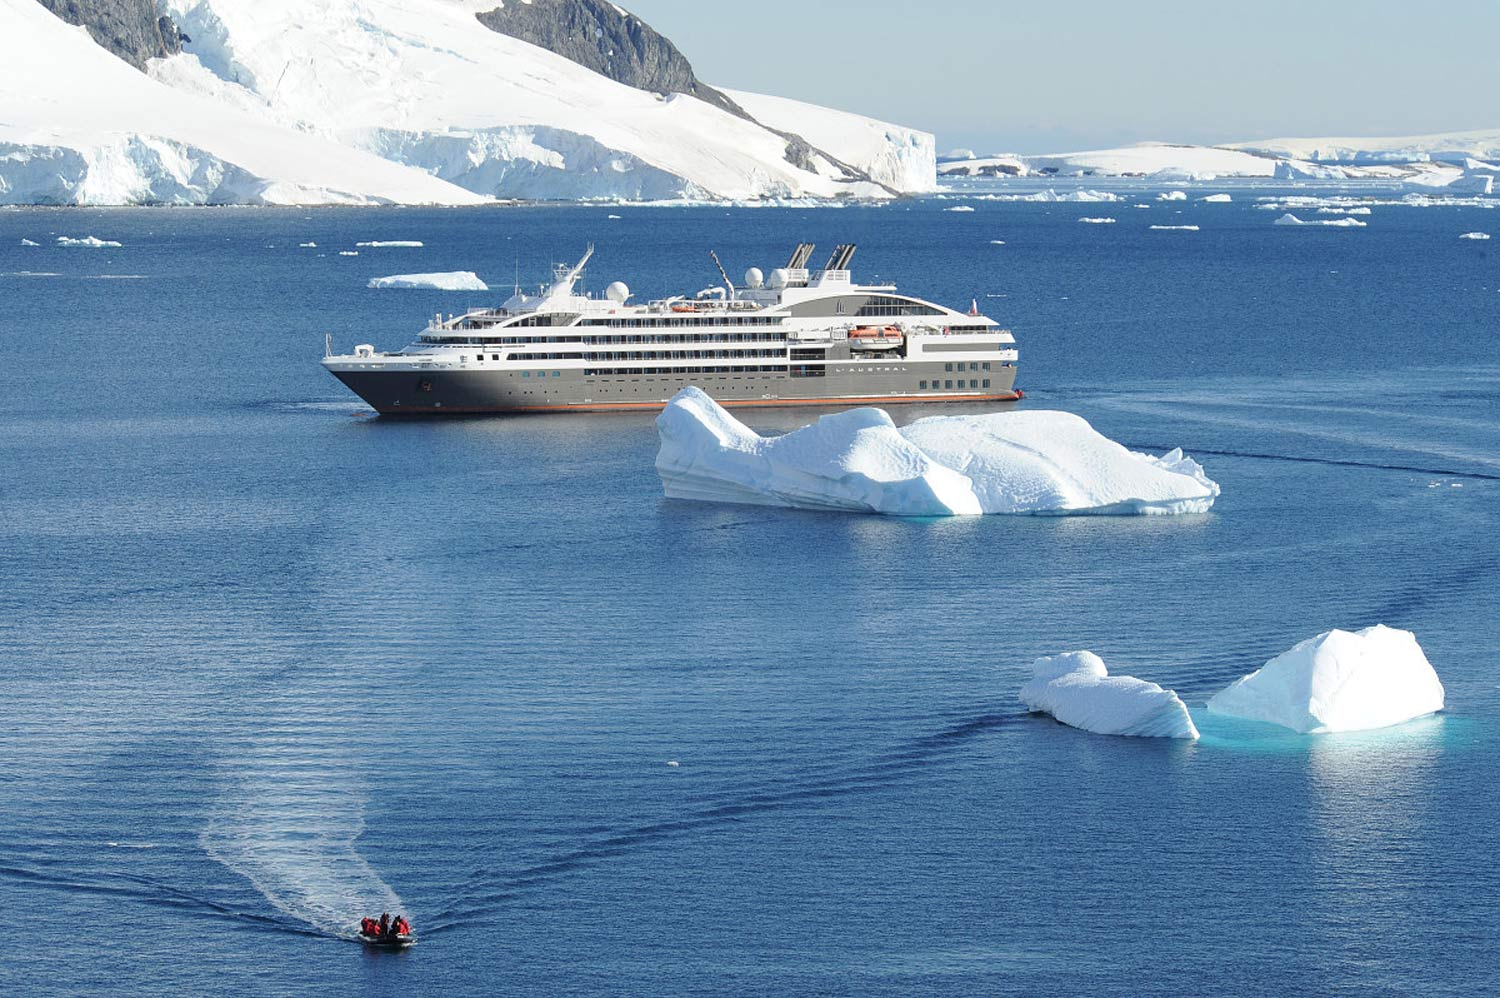 L'Austral cruises through many northern seas, including Iceland and the Northwest Passage from the Atlantic to the Pacific.